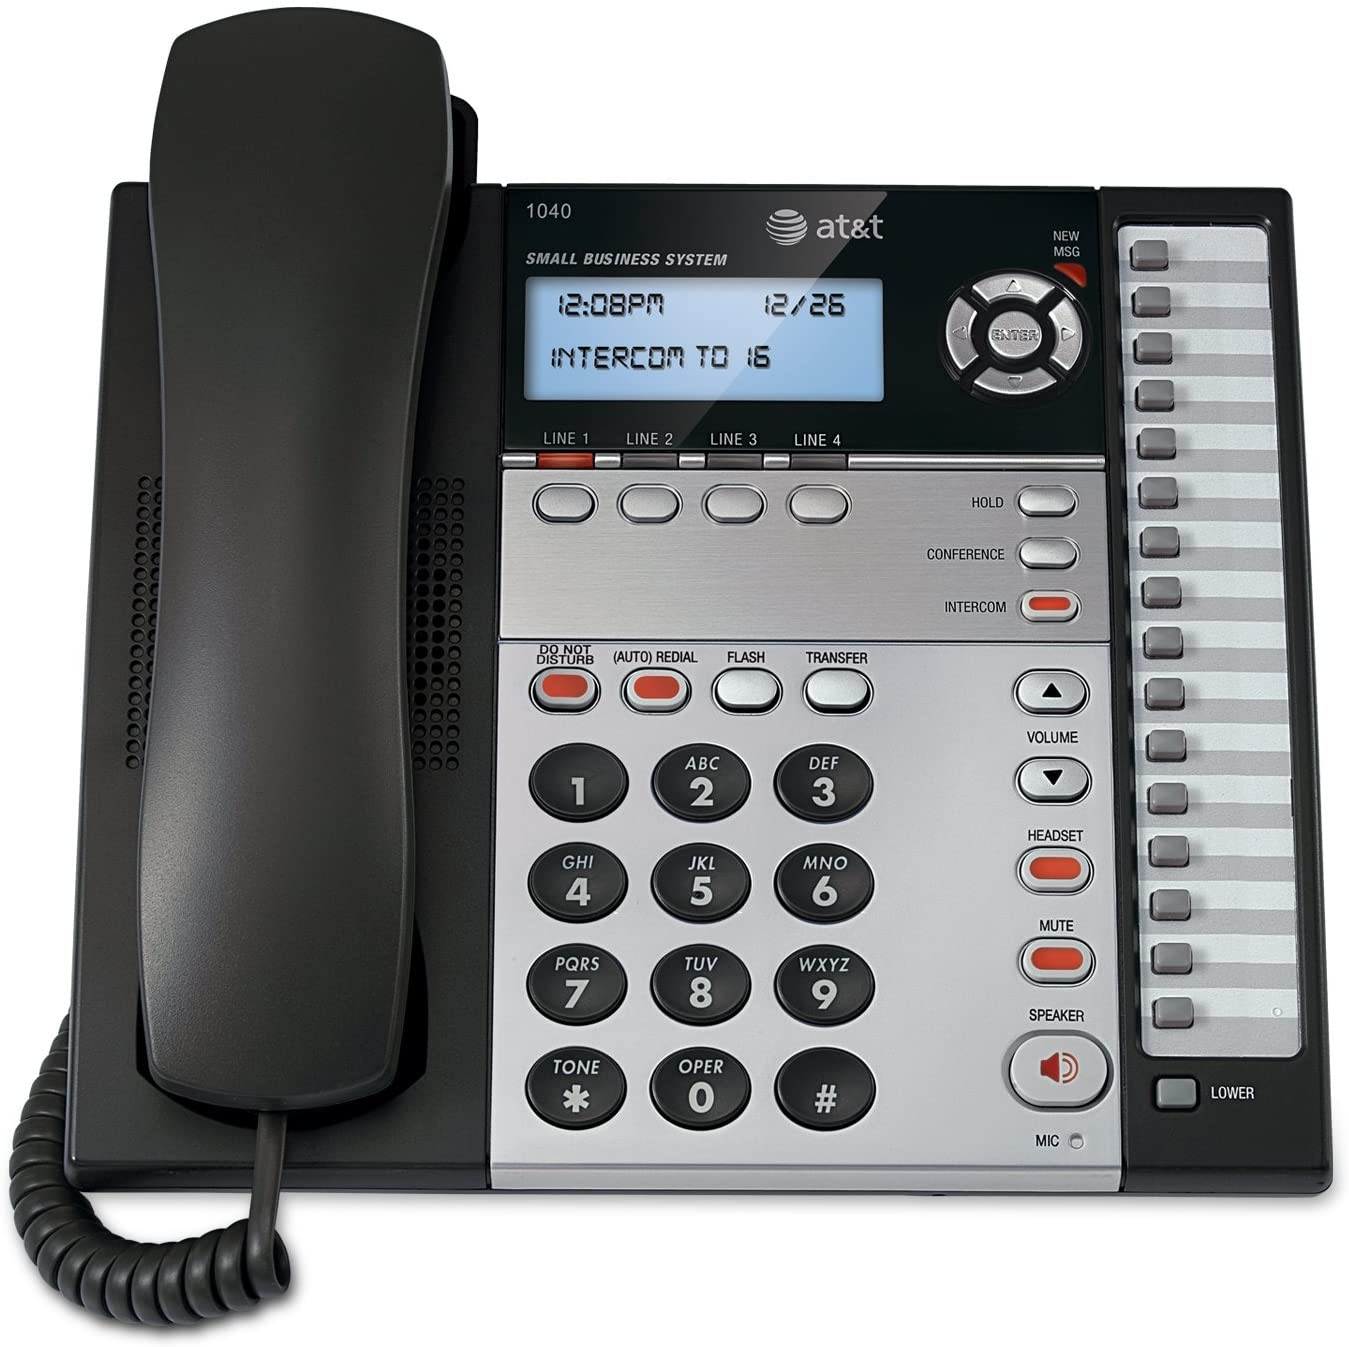 AT&T 1070 4-Line Expandable Corded Phone System with Caller ID/Call Waiting and Speakerphone, 1 Handset, Black/Silver : Telephone Headsets : Electronics